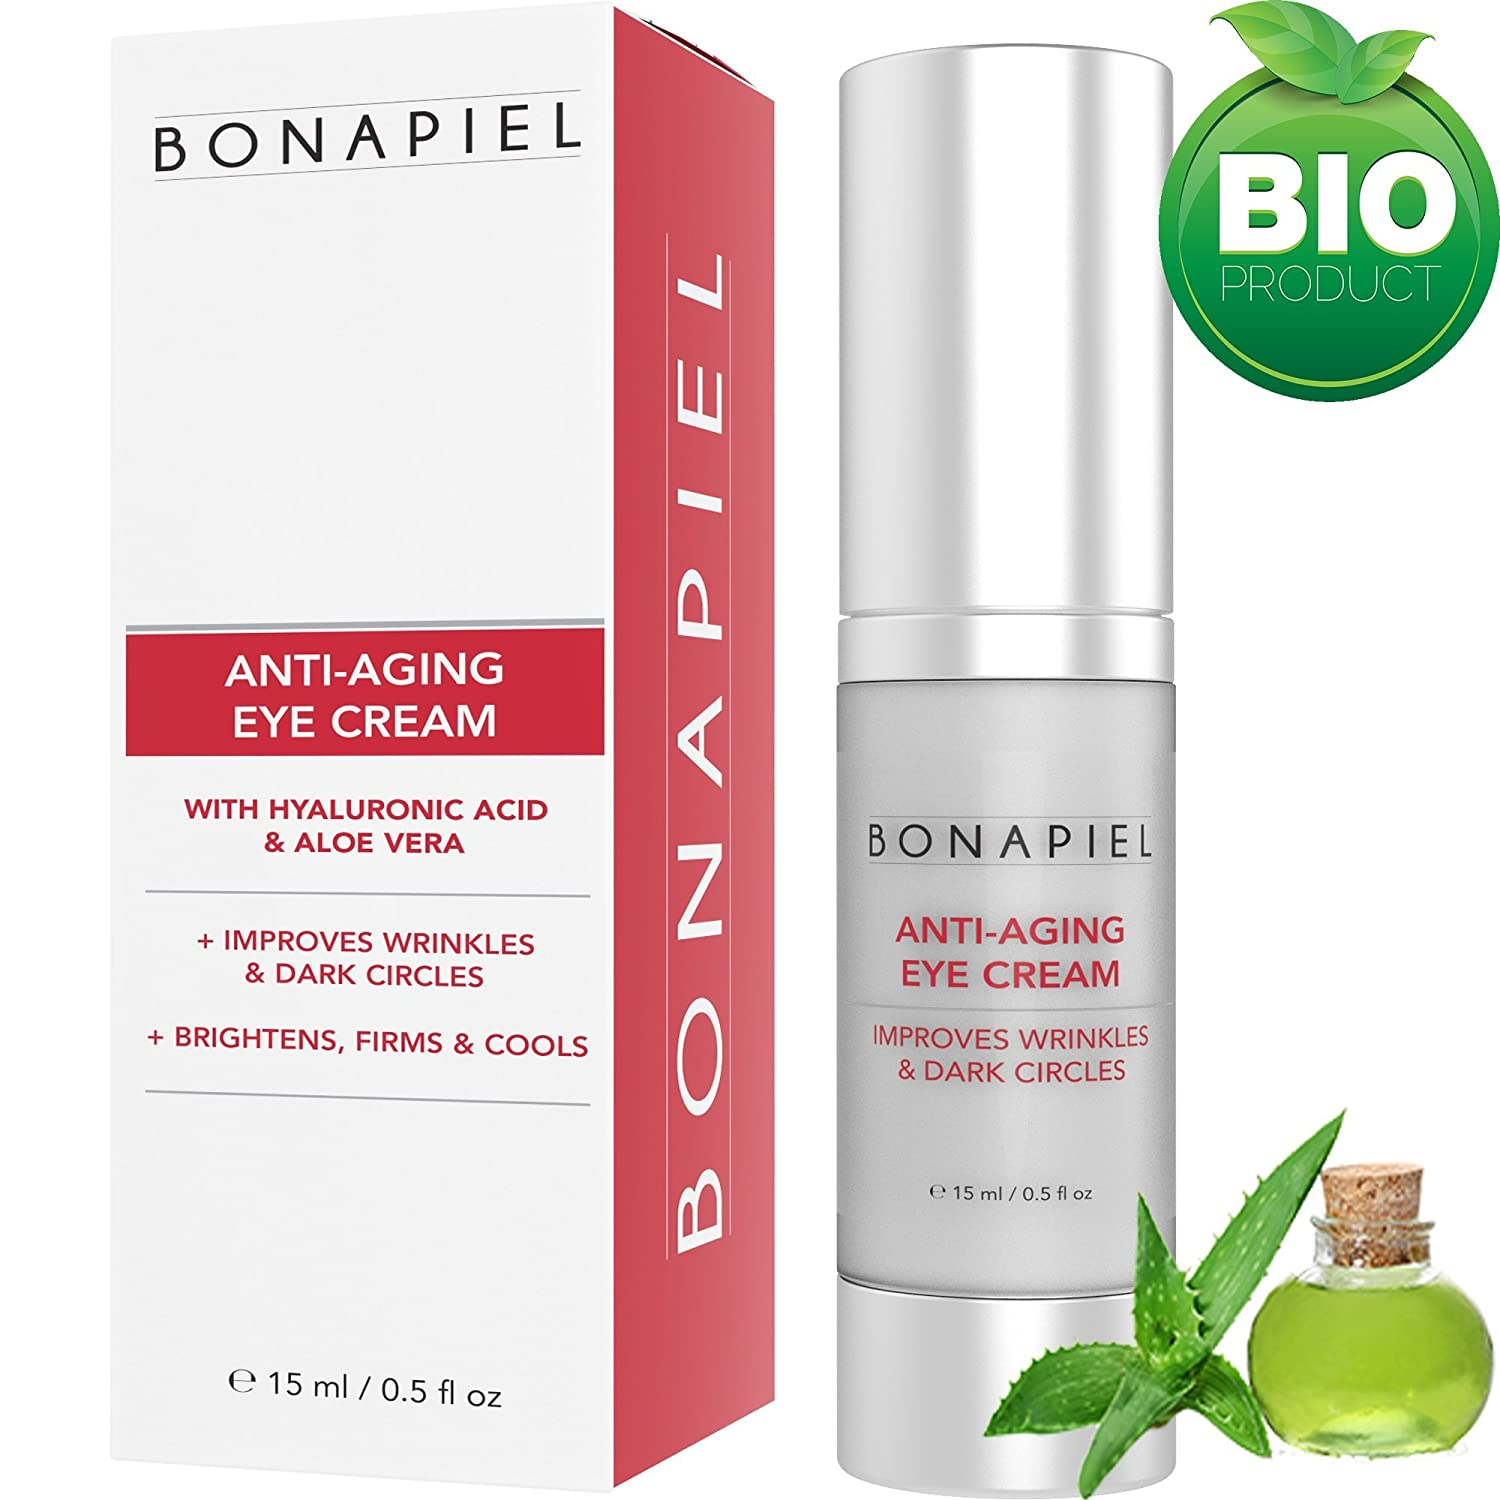 Bio & Vegan Eye Cream With Hyaluronic Acid, Aloe Vera, Argan Oil and Green Tea Extract by Bonapiel | Reduce fine lines, wrinkles, dark circles, puffiness | Natural, Organic Anti Aging Eye Care Treatment | 15 ml collagen building formula for all skin t